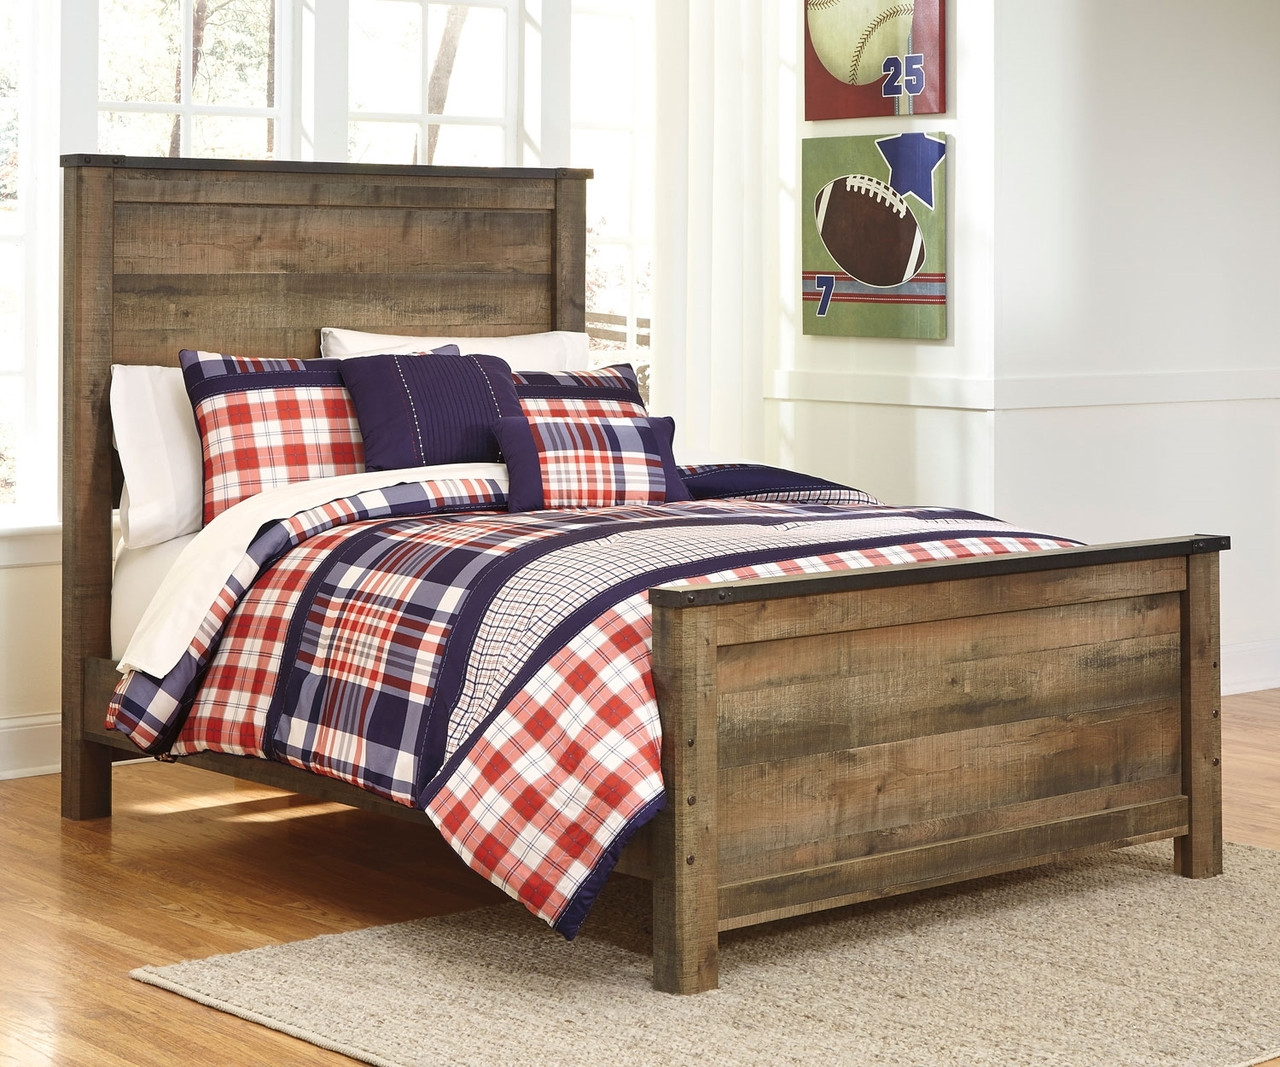 Trinell B446 Full Size Panel Bed Ashley Kids Furniture Boys And Girls Bedroom Furniture